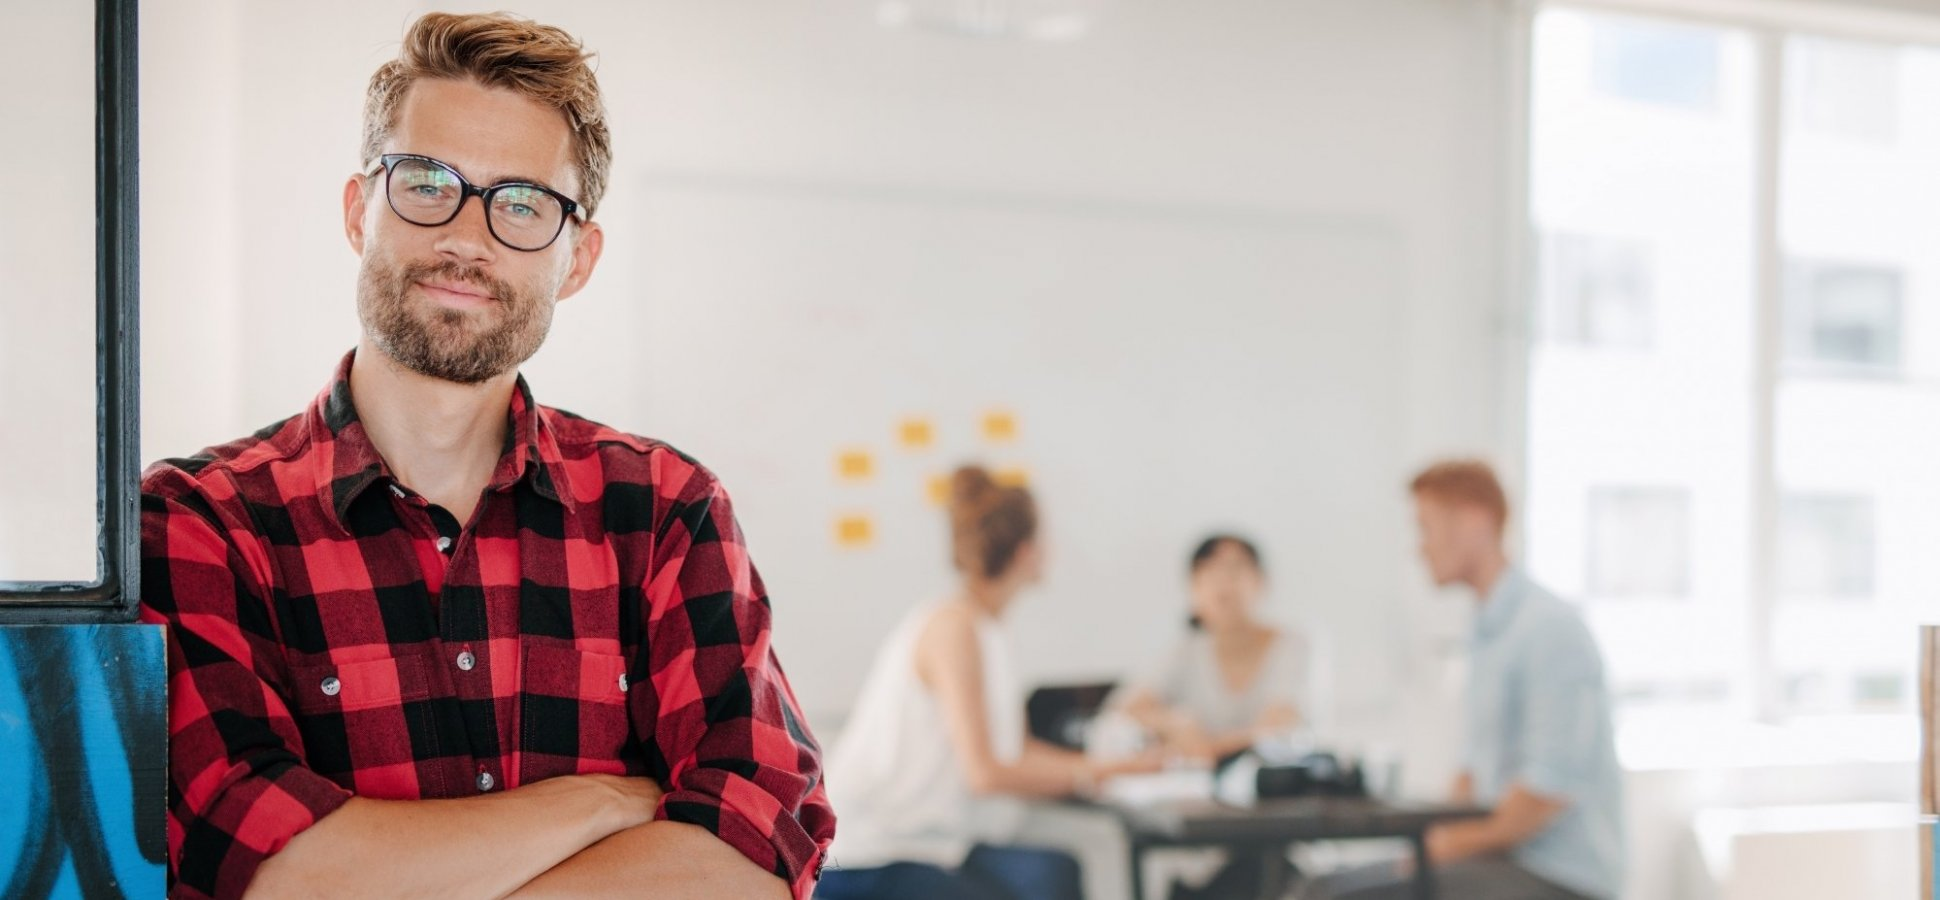 Aspiring Entrepreneurs Don't Learn These 9 Leadership Lessons Until It's Too Late